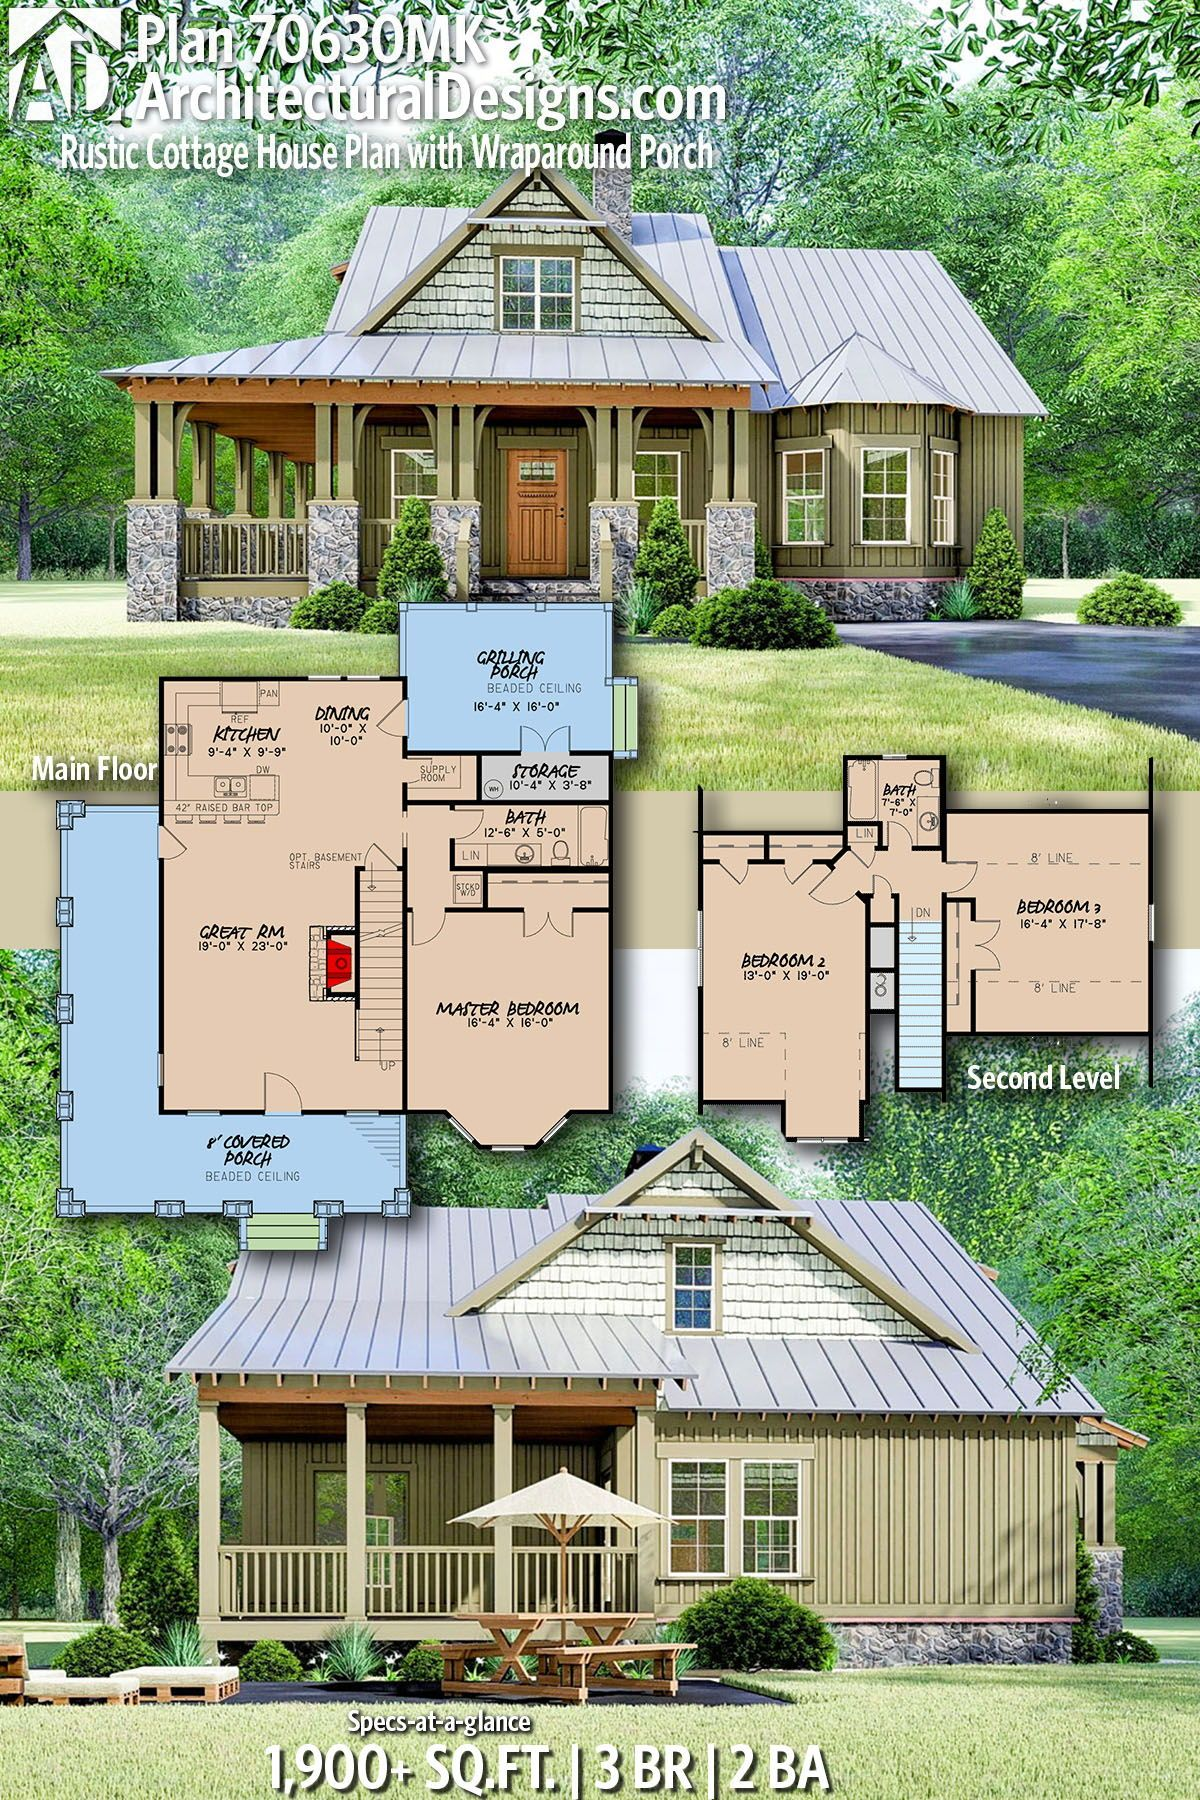 Plan 70630mk Rustic Cottage House Plan With Wraparound Porch Cottage House Plans House Plans Rustic Cottage